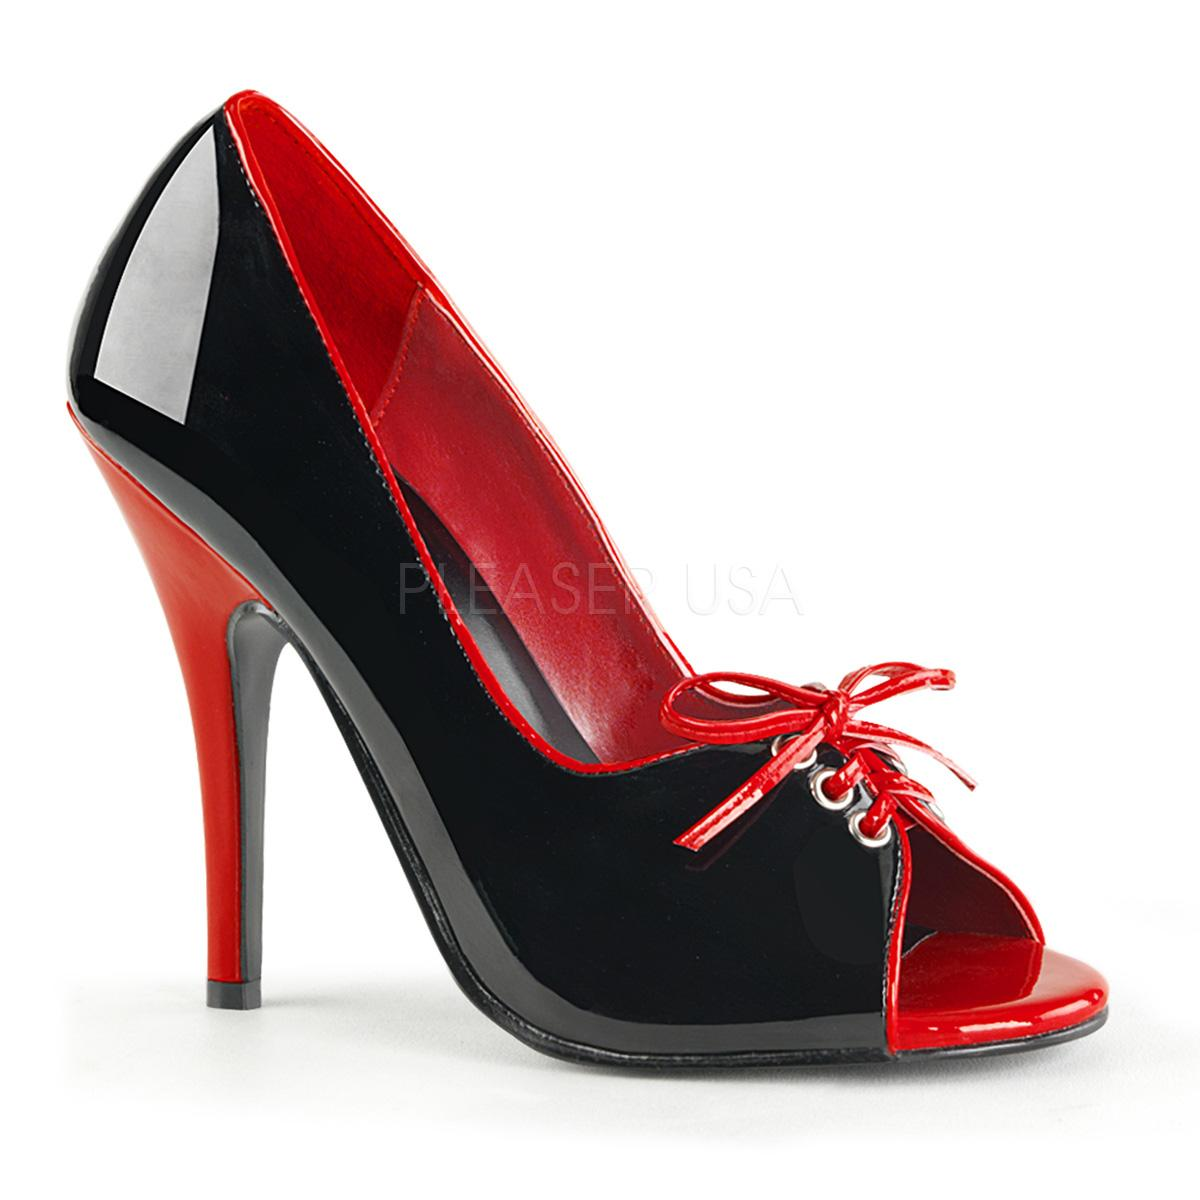 Black/Red Patent Peep Toe Stiletto